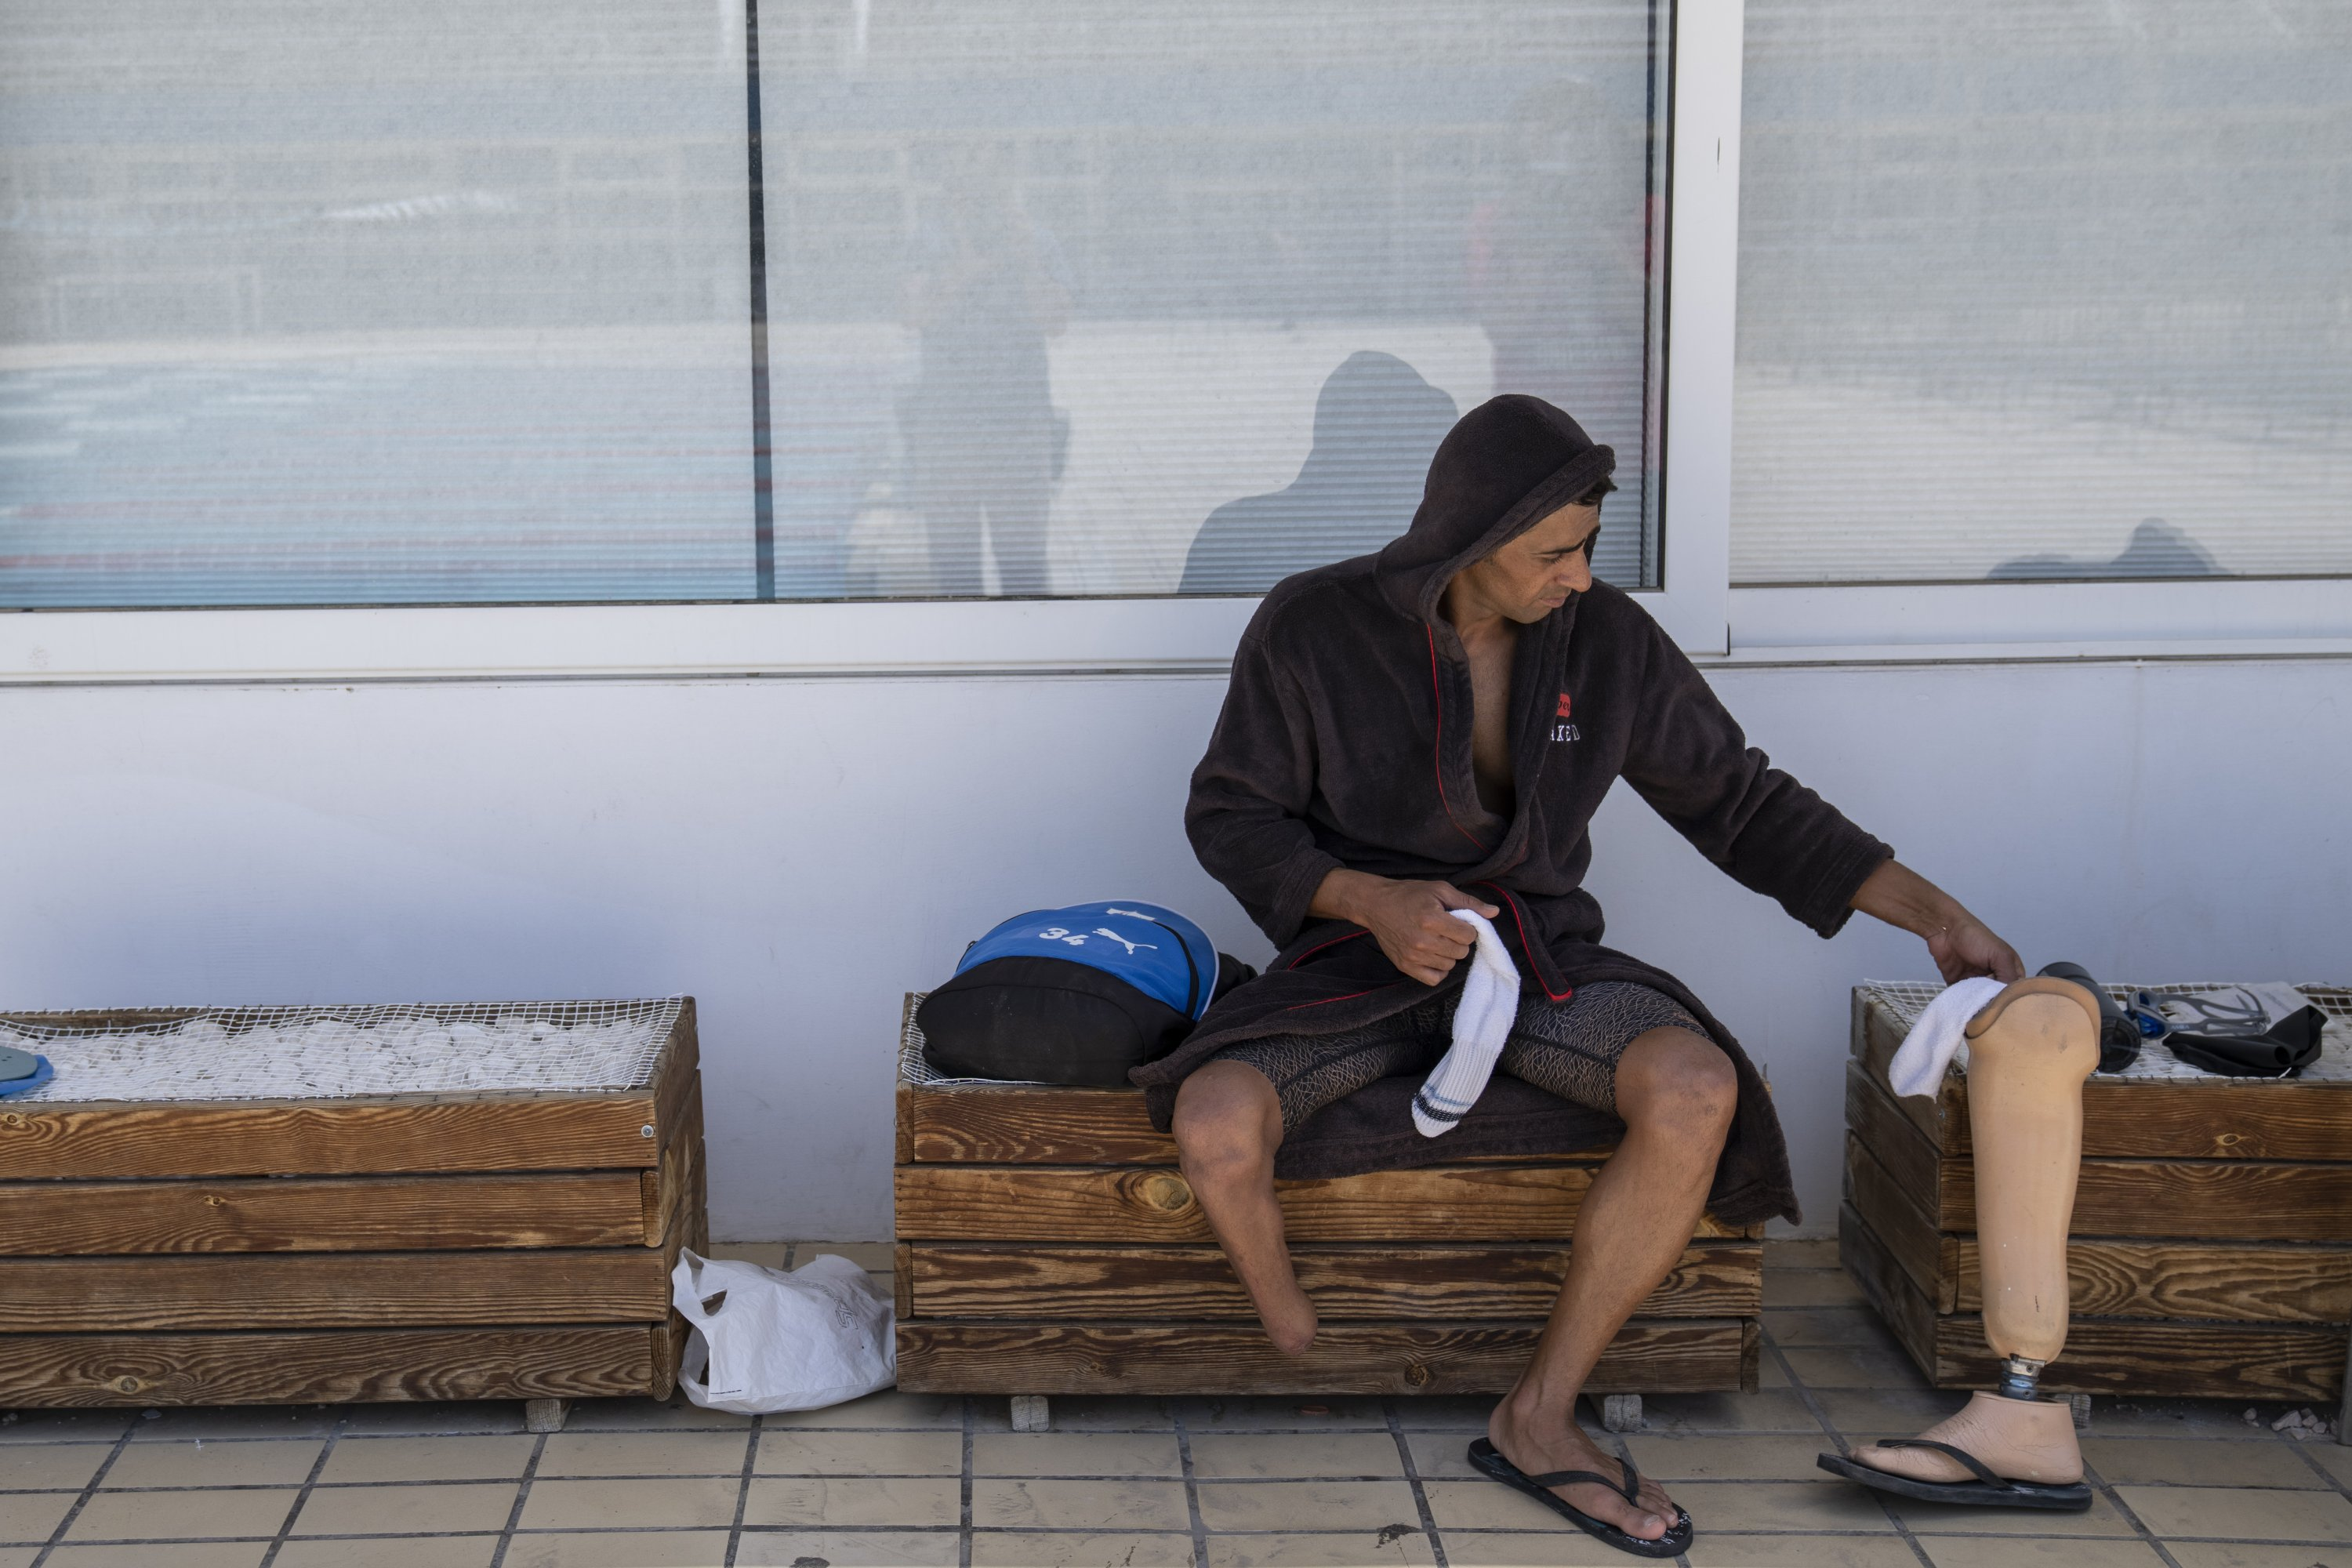 Syrian refugee Ibrahim al-Hussein, an amputee swimmer who lost his leg during the war in Syria, after finishing training at the Olympic Aquatic Center, Athens, Greece, June 30, 2021. (AP Photo)